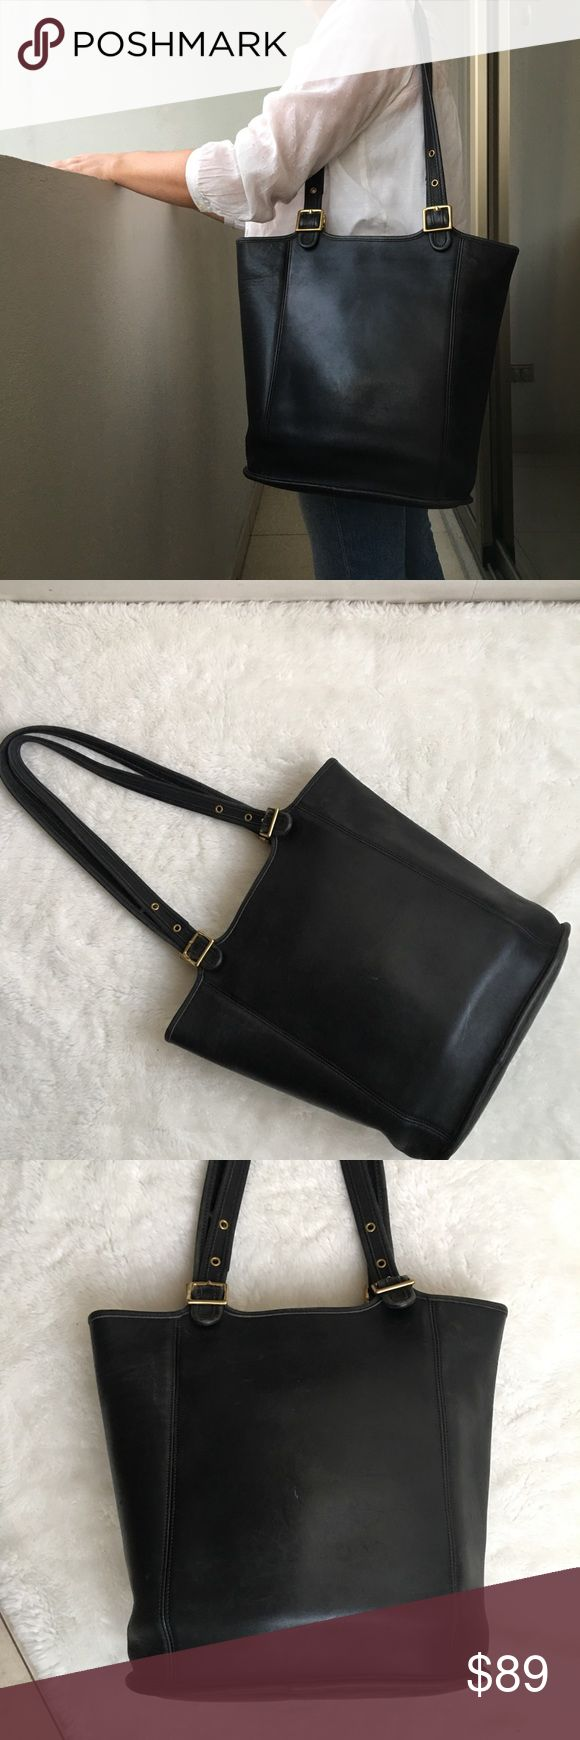 Coach Legacy Vintage Duffle Black Leather Bag Pre-owned authentic Coach Legacy Vintage Duffle Black Leather Bag. Please look at pictures for better reference. Happy Shopping! Coach Bags Totes